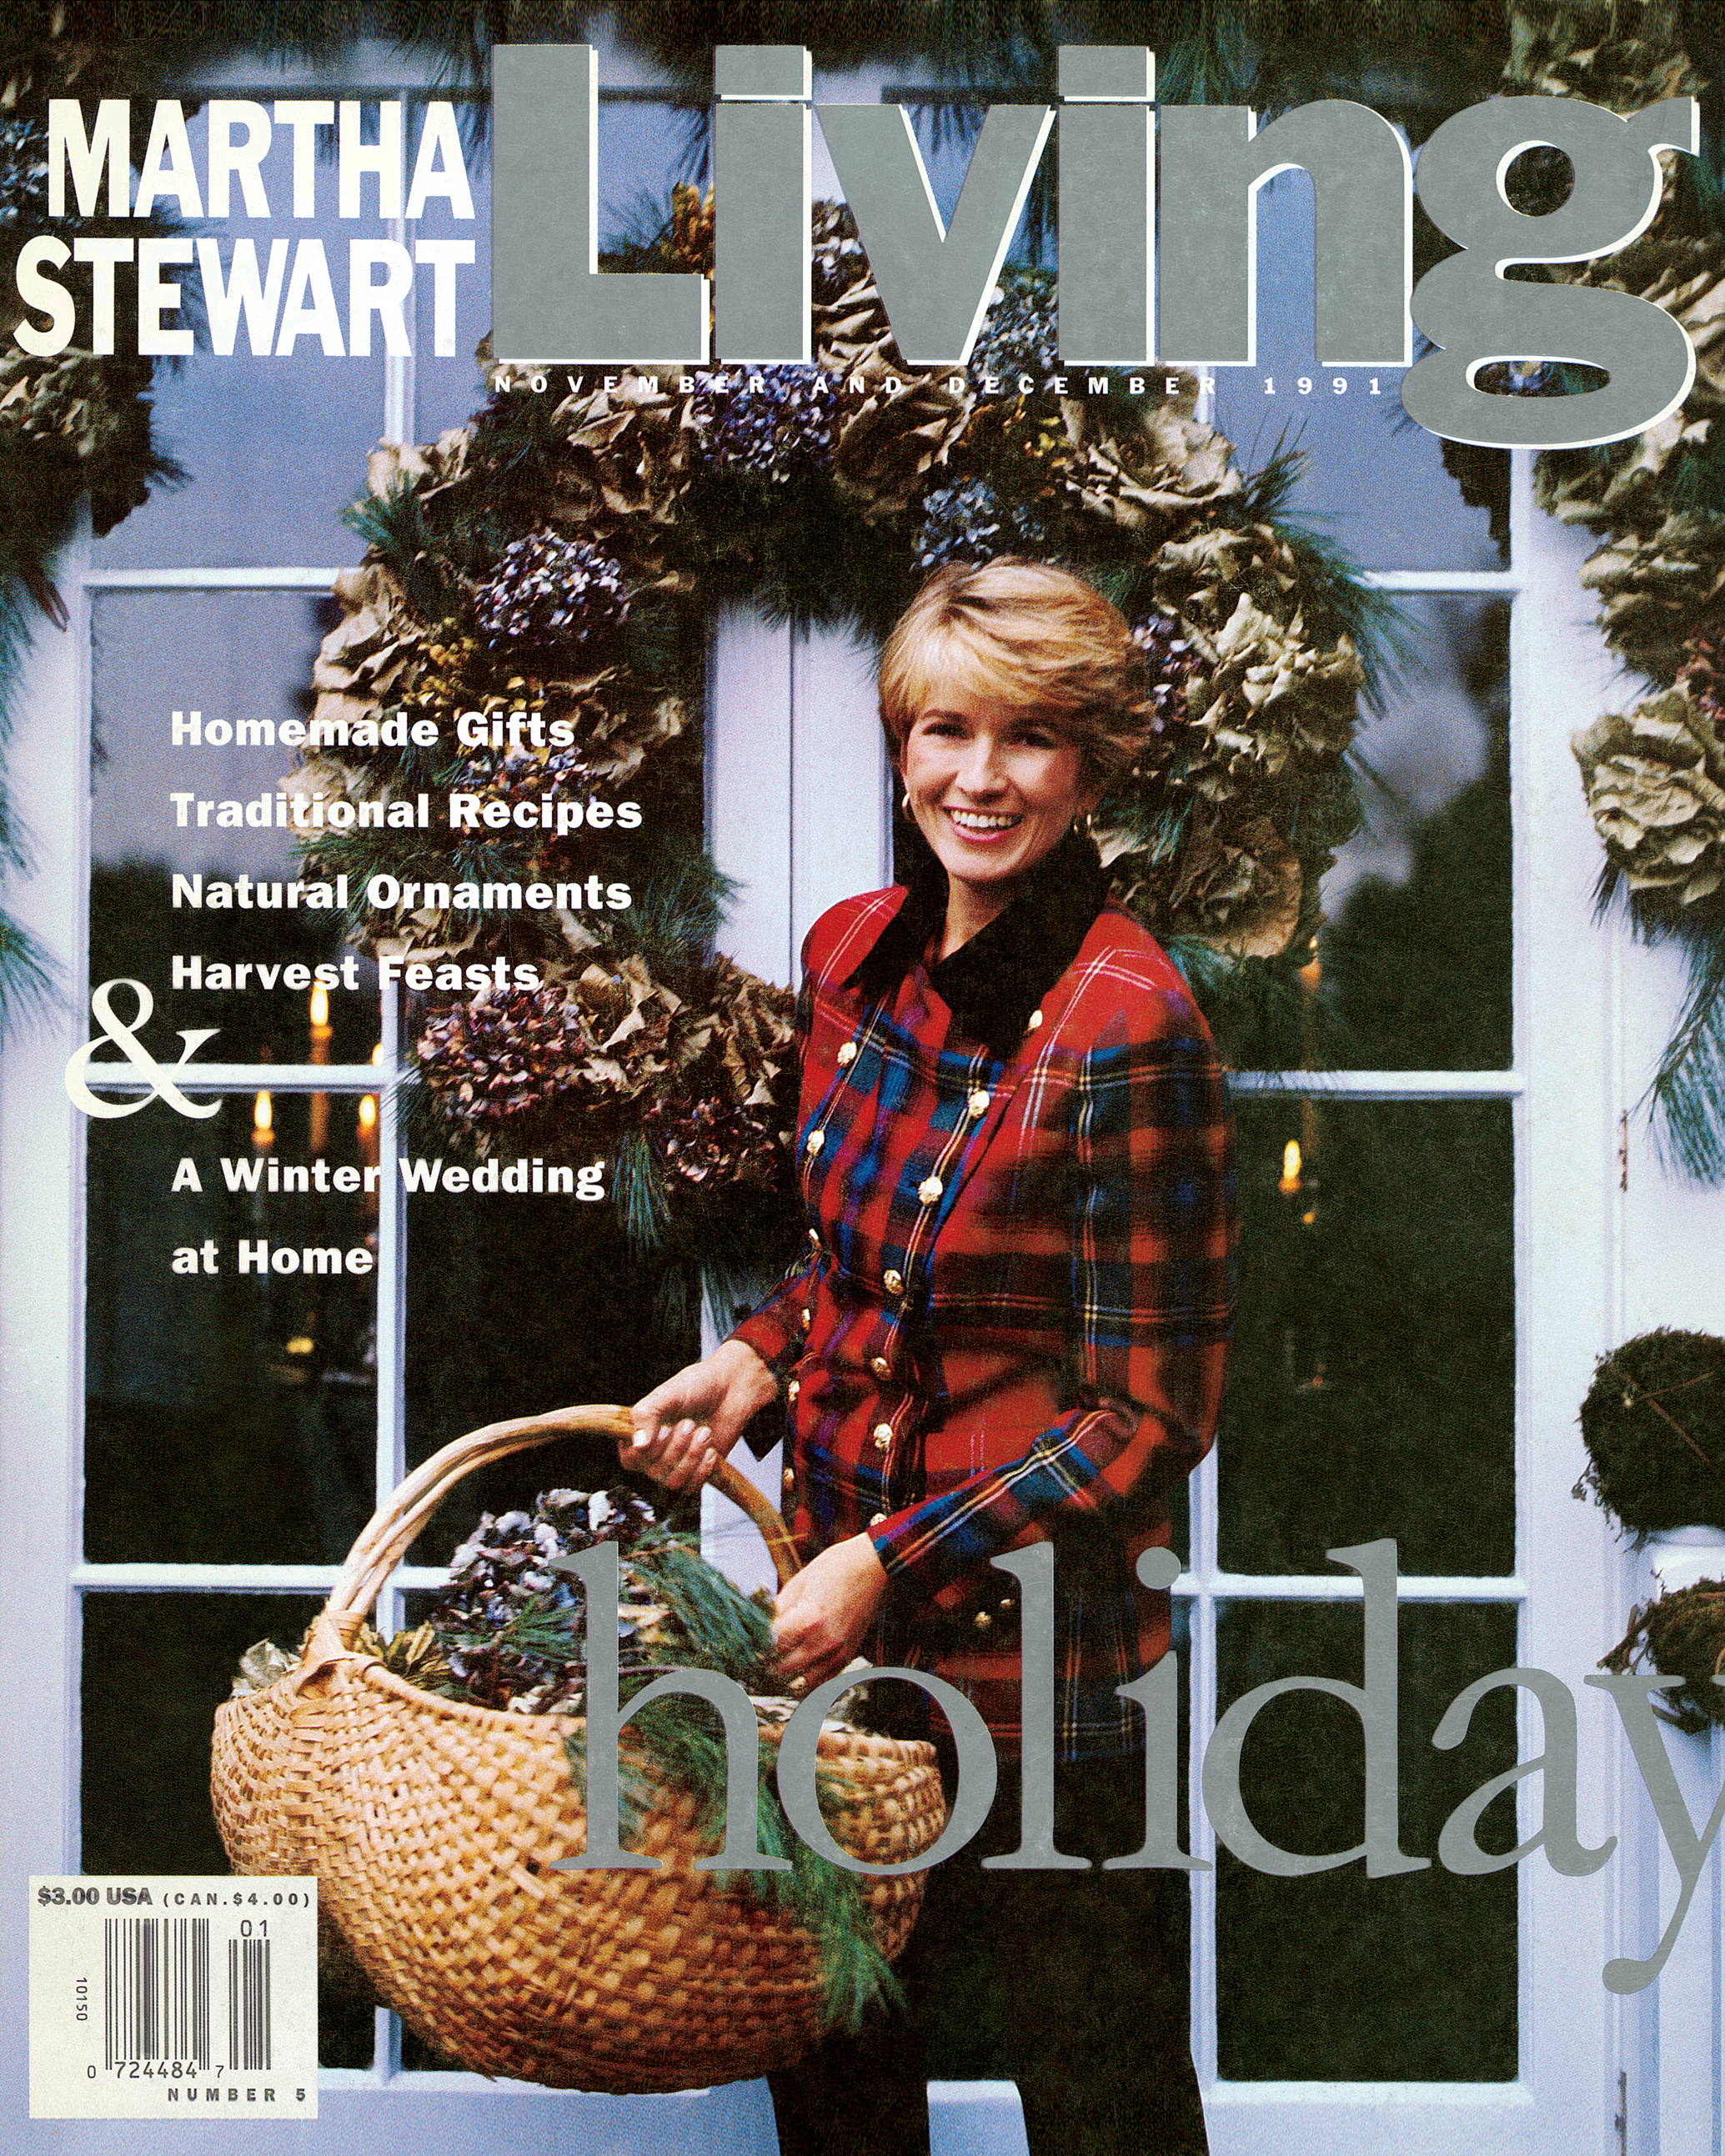 msl-cover-holiday-1991.jpg